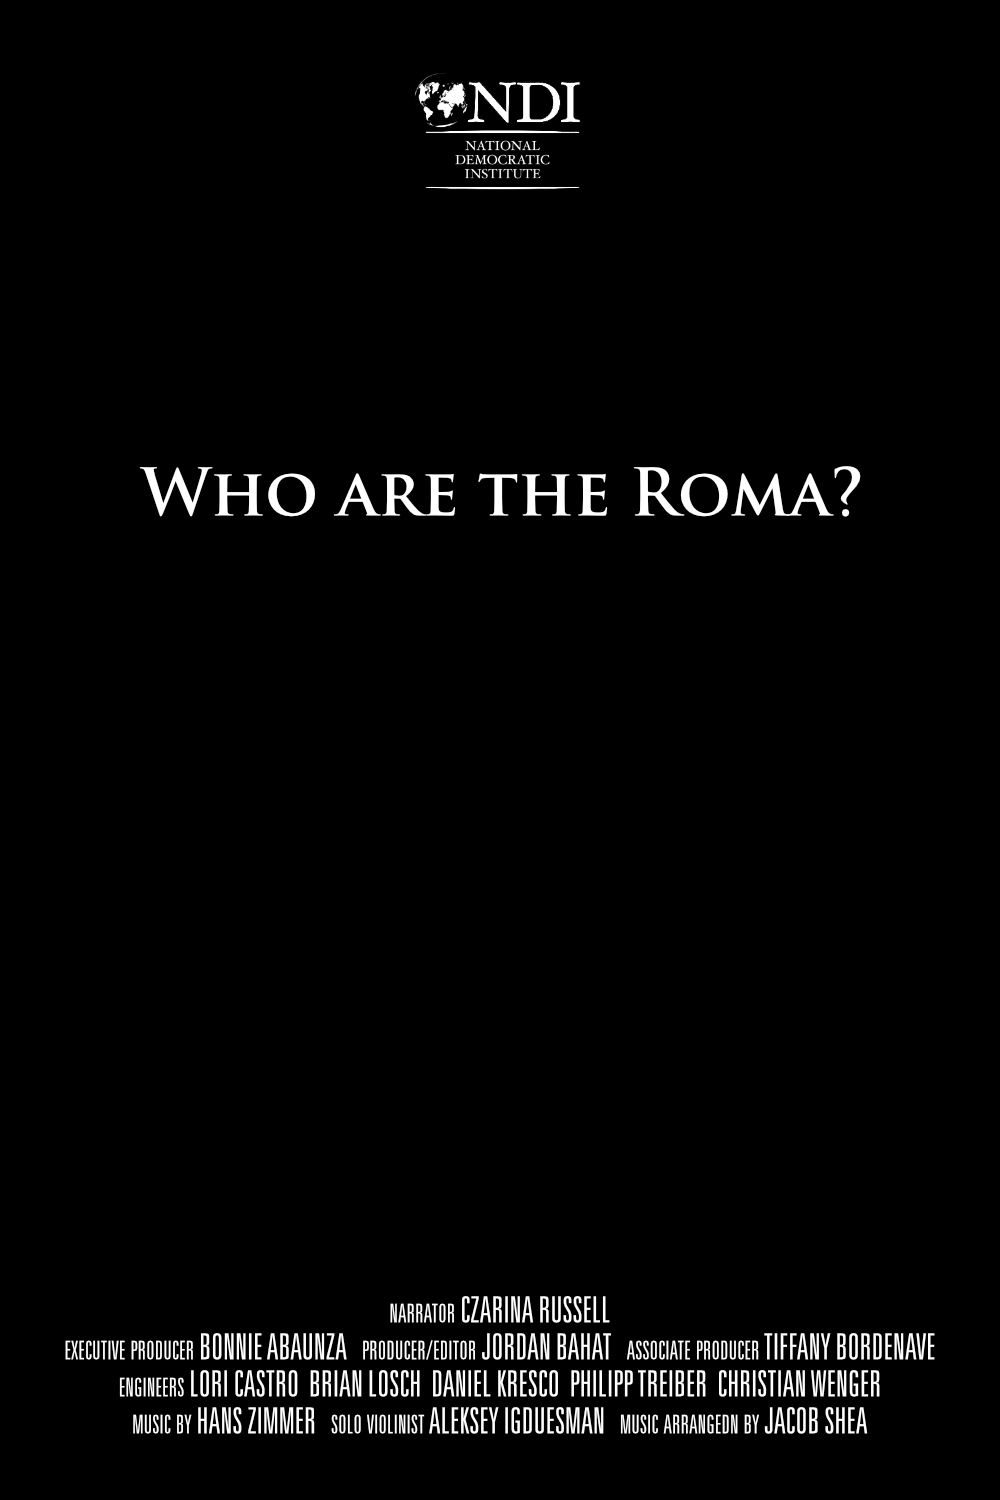 Who are the Roma?